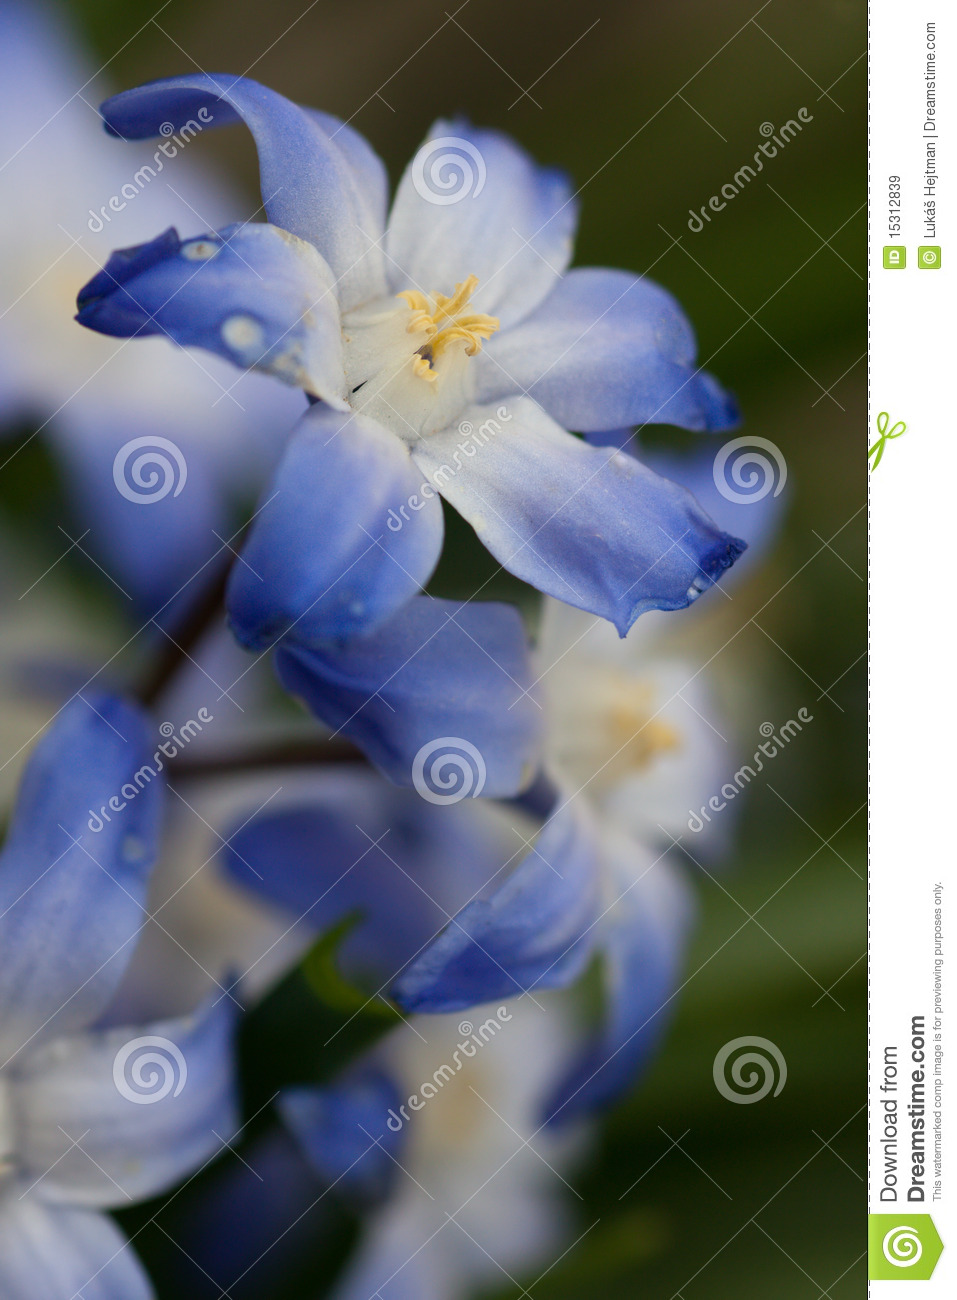 Blue and white spring flowers stock image image of botany first blue and white spring flowers mightylinksfo Choice Image